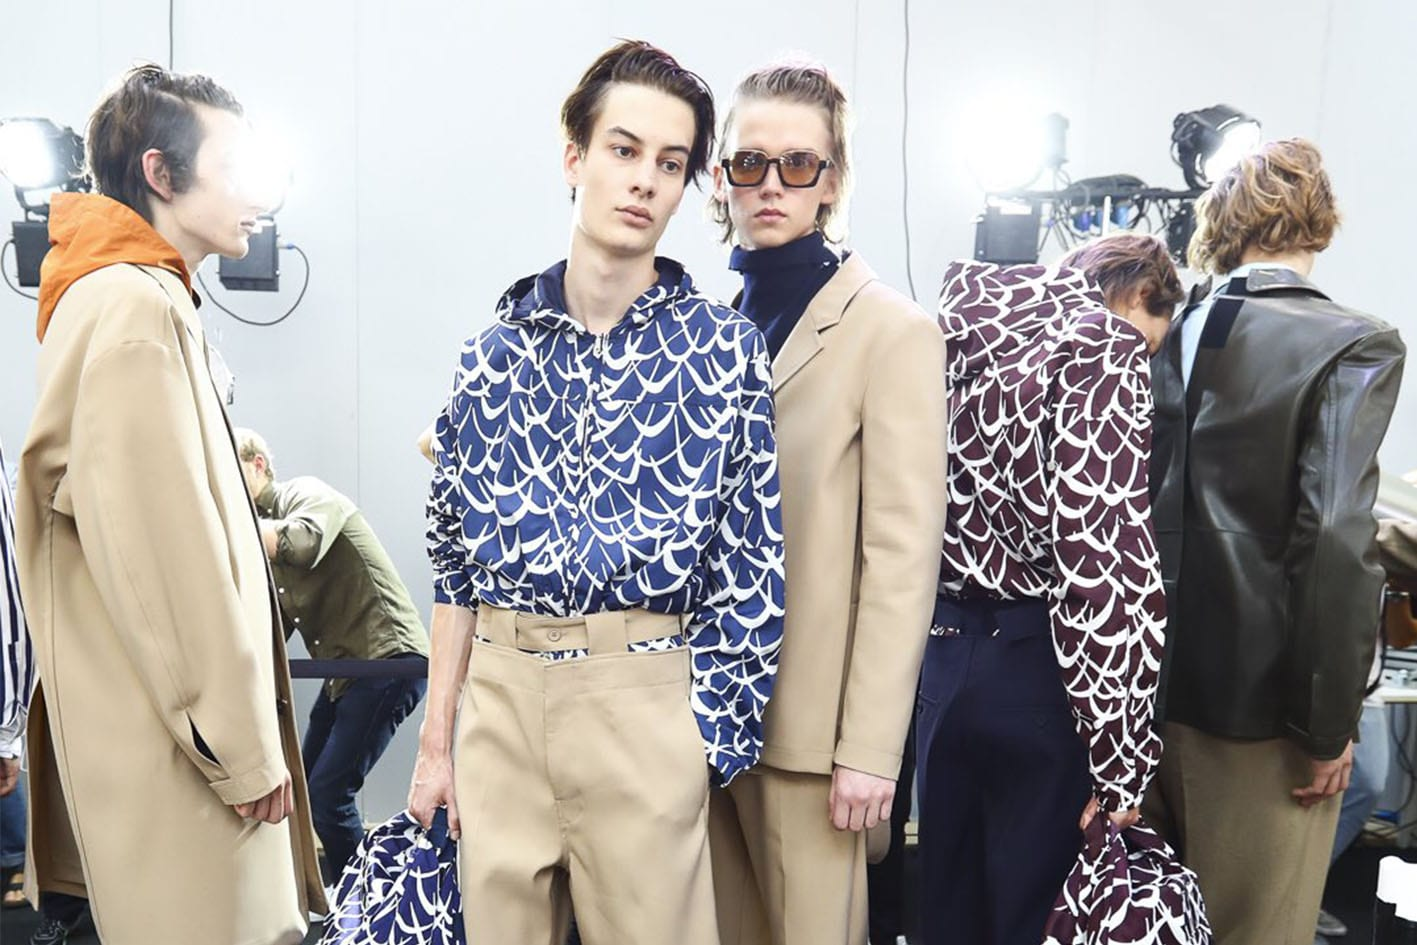 Milan Fashion Week SS17 : Marni Menswear Makes Its Mark